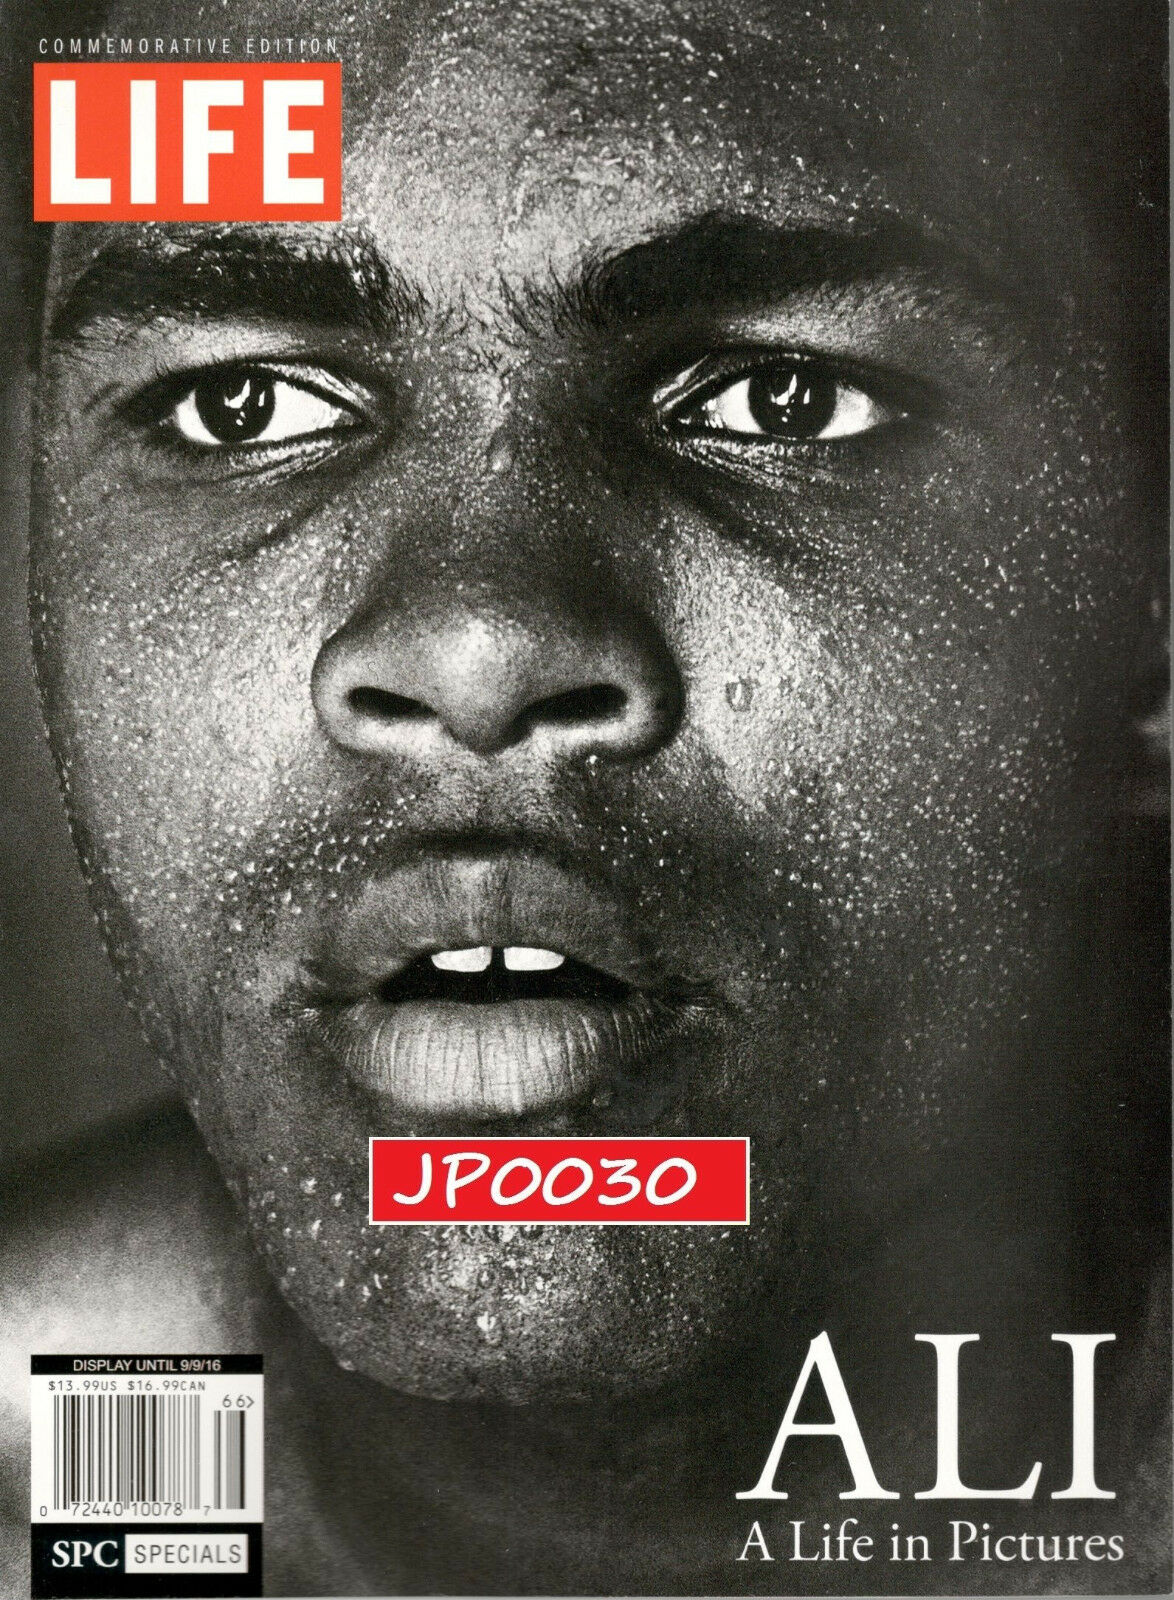 commemorative essay on muhammad ali S 166 a bill to require the secretary of the treasury to mint coins in commemoration of muhammad ali in govtrackus, a database of bills in the us congress.